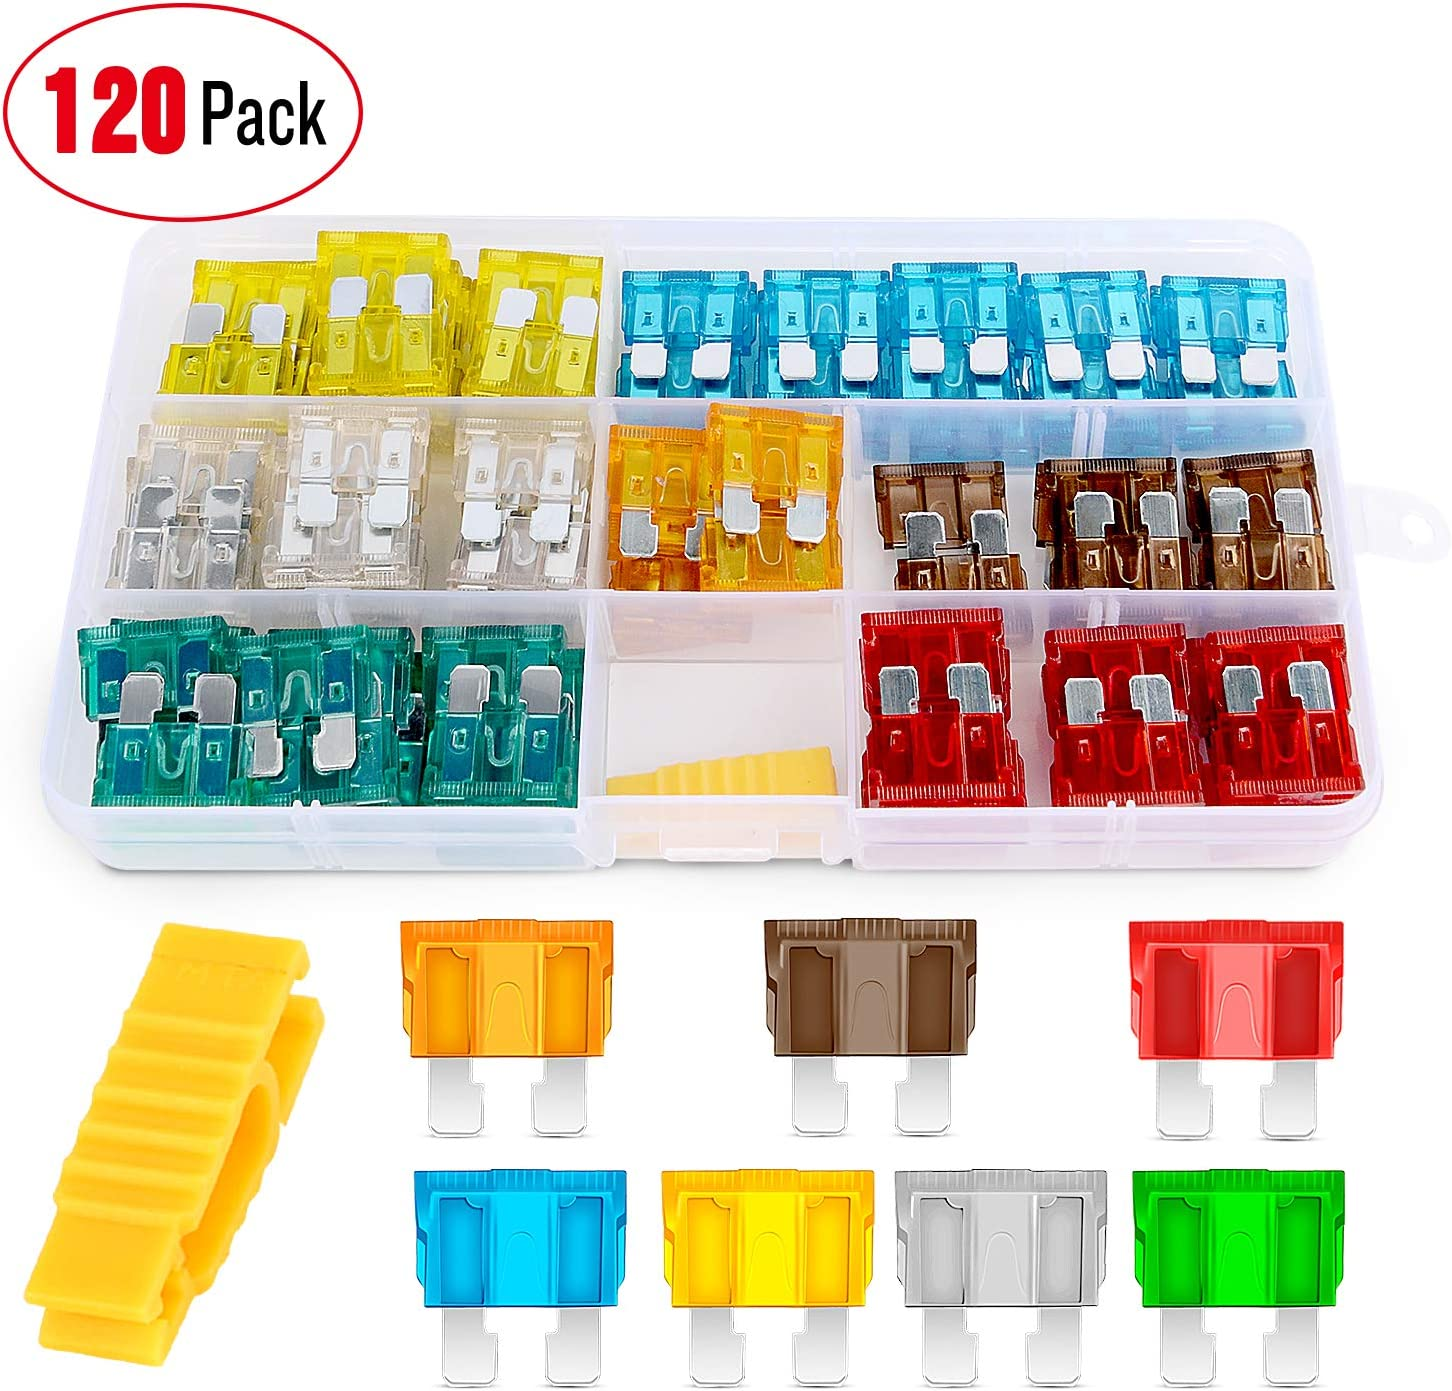 Nilight 120 pcs Standard Fuse Assortment kit – 5, 7.5, 10, 15, 20, 25, 30 AMP – Regular APR/ATO (Open)/ATC Blade Fuses for Cars, Trucks, Boats,Automotives,2 Years Warranty